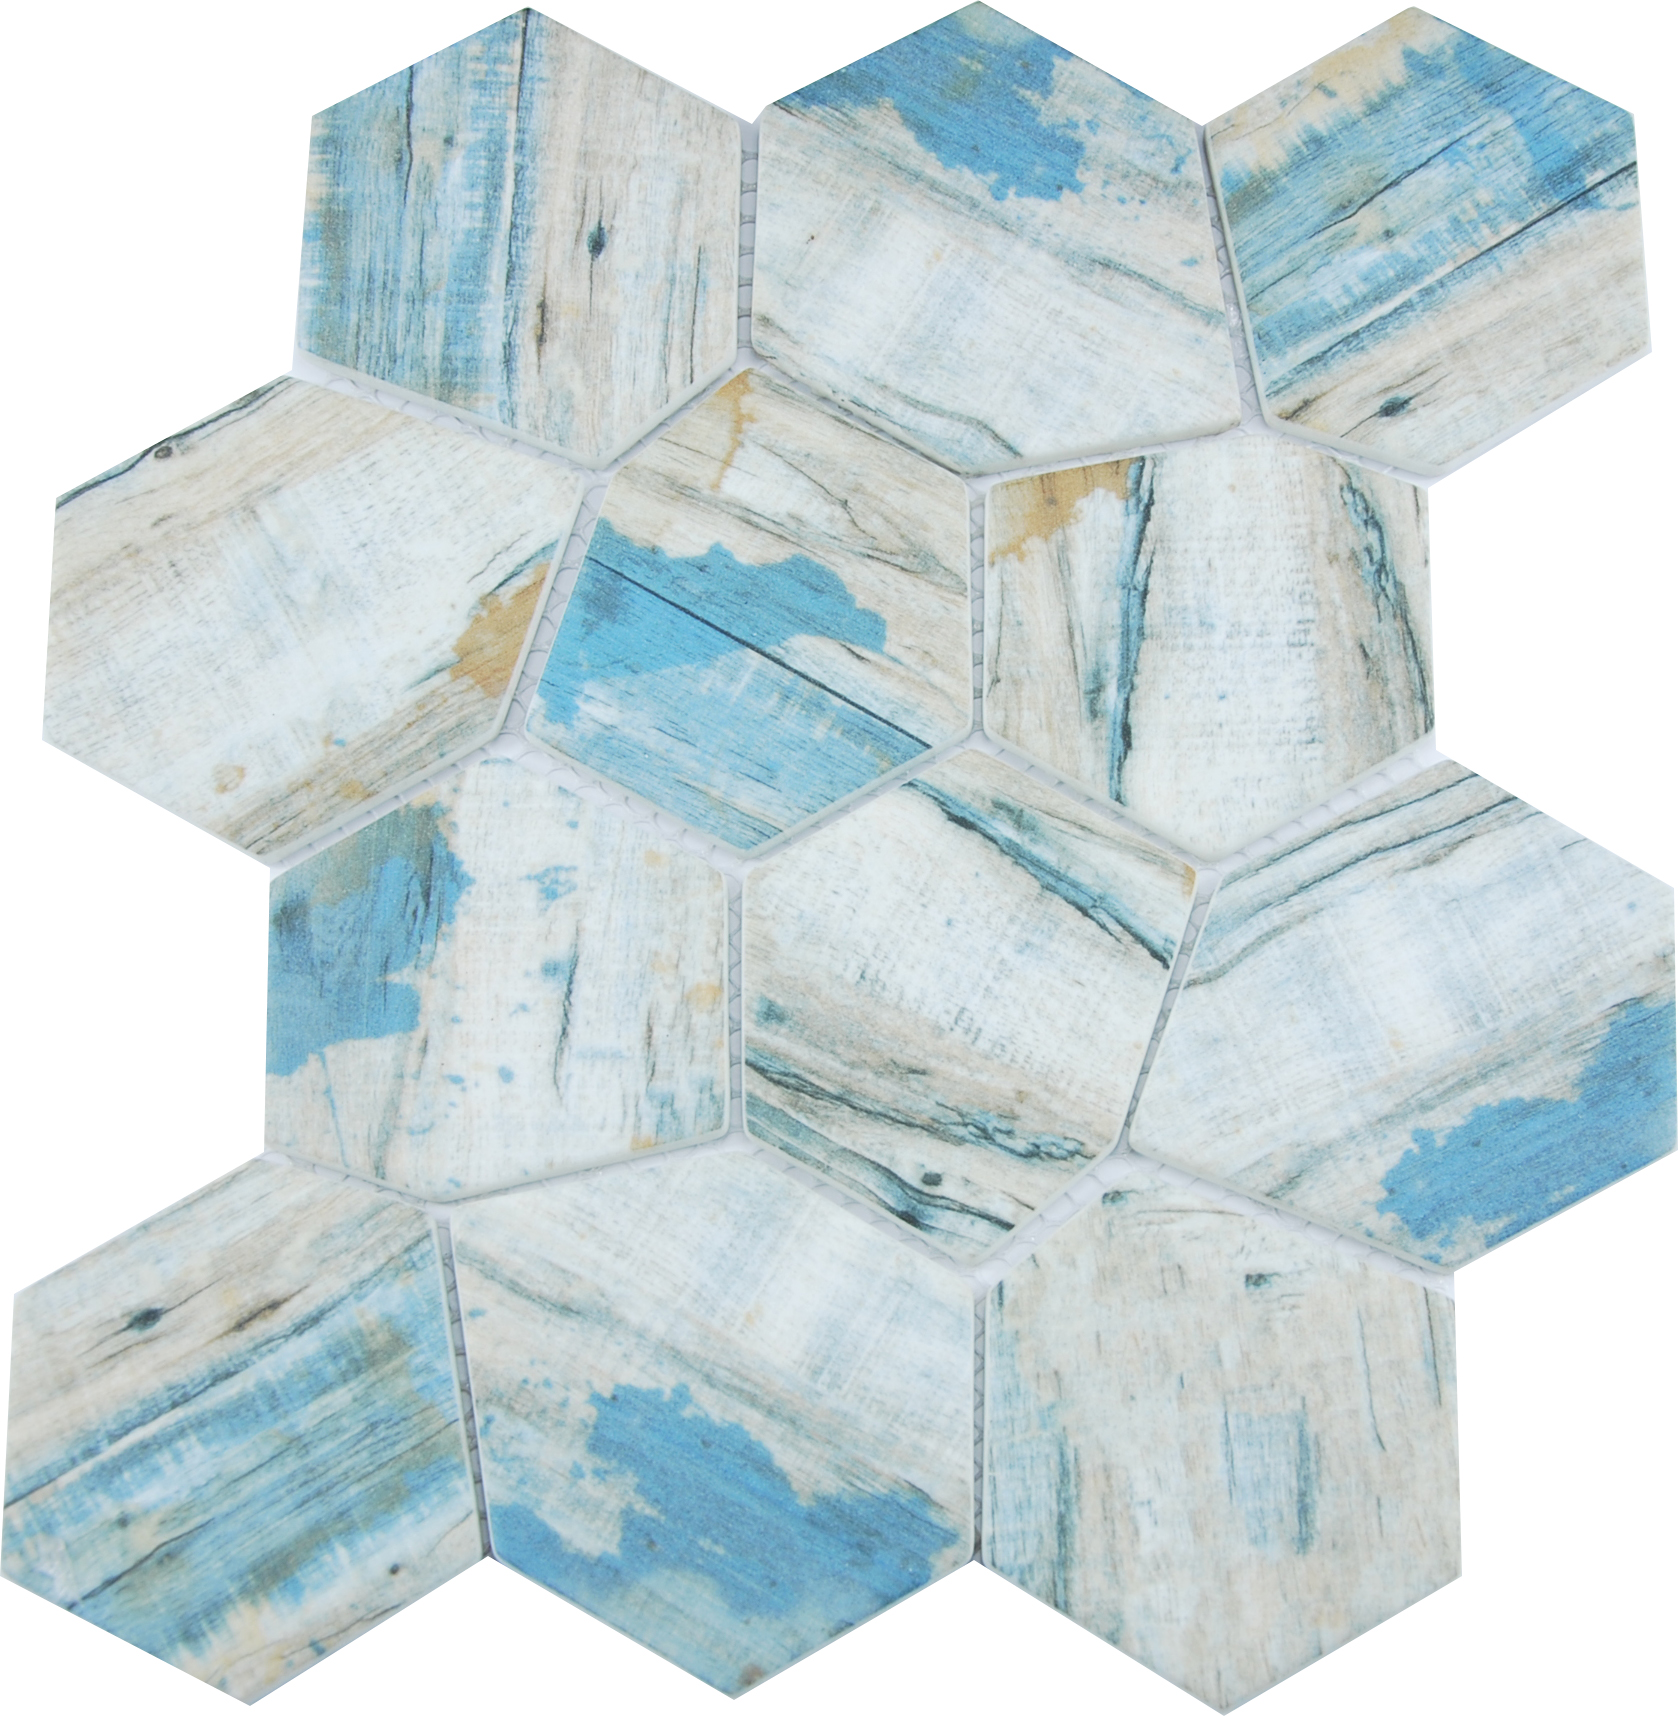 SELECT IRREGULAR HEXAGON BLUE SATIN Image